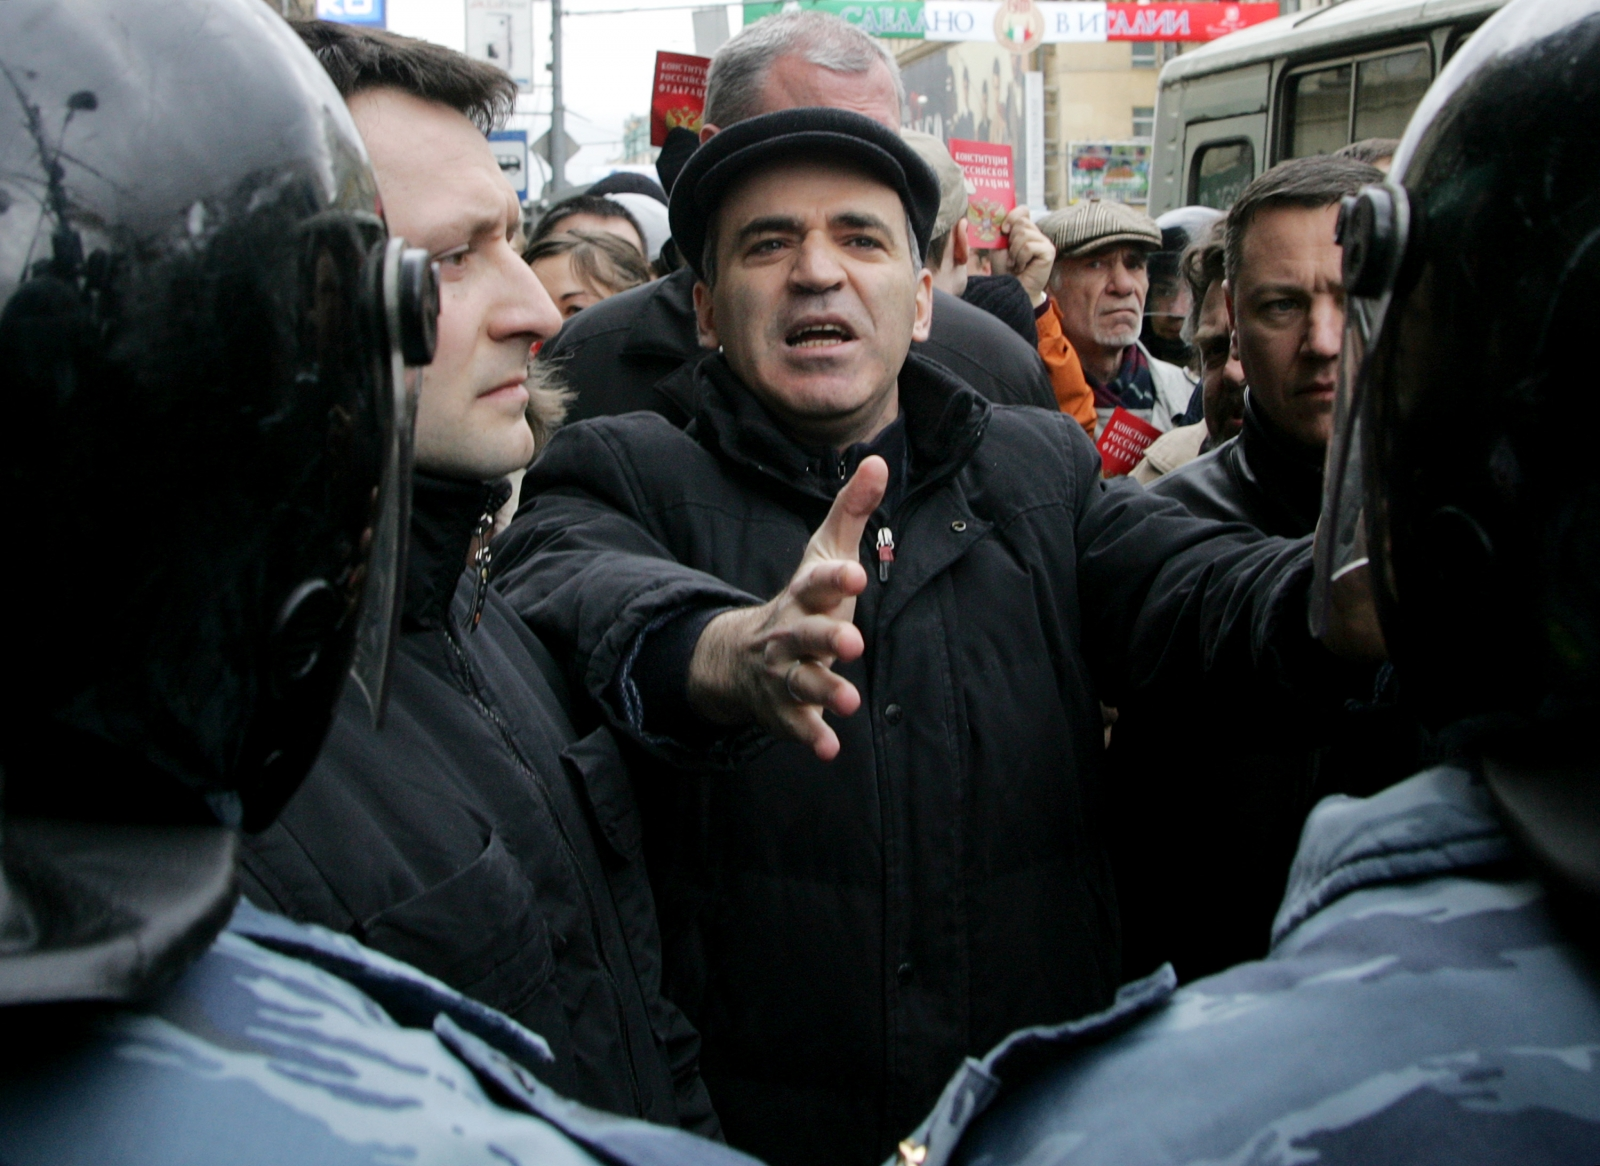 Kasparov was arrested at a